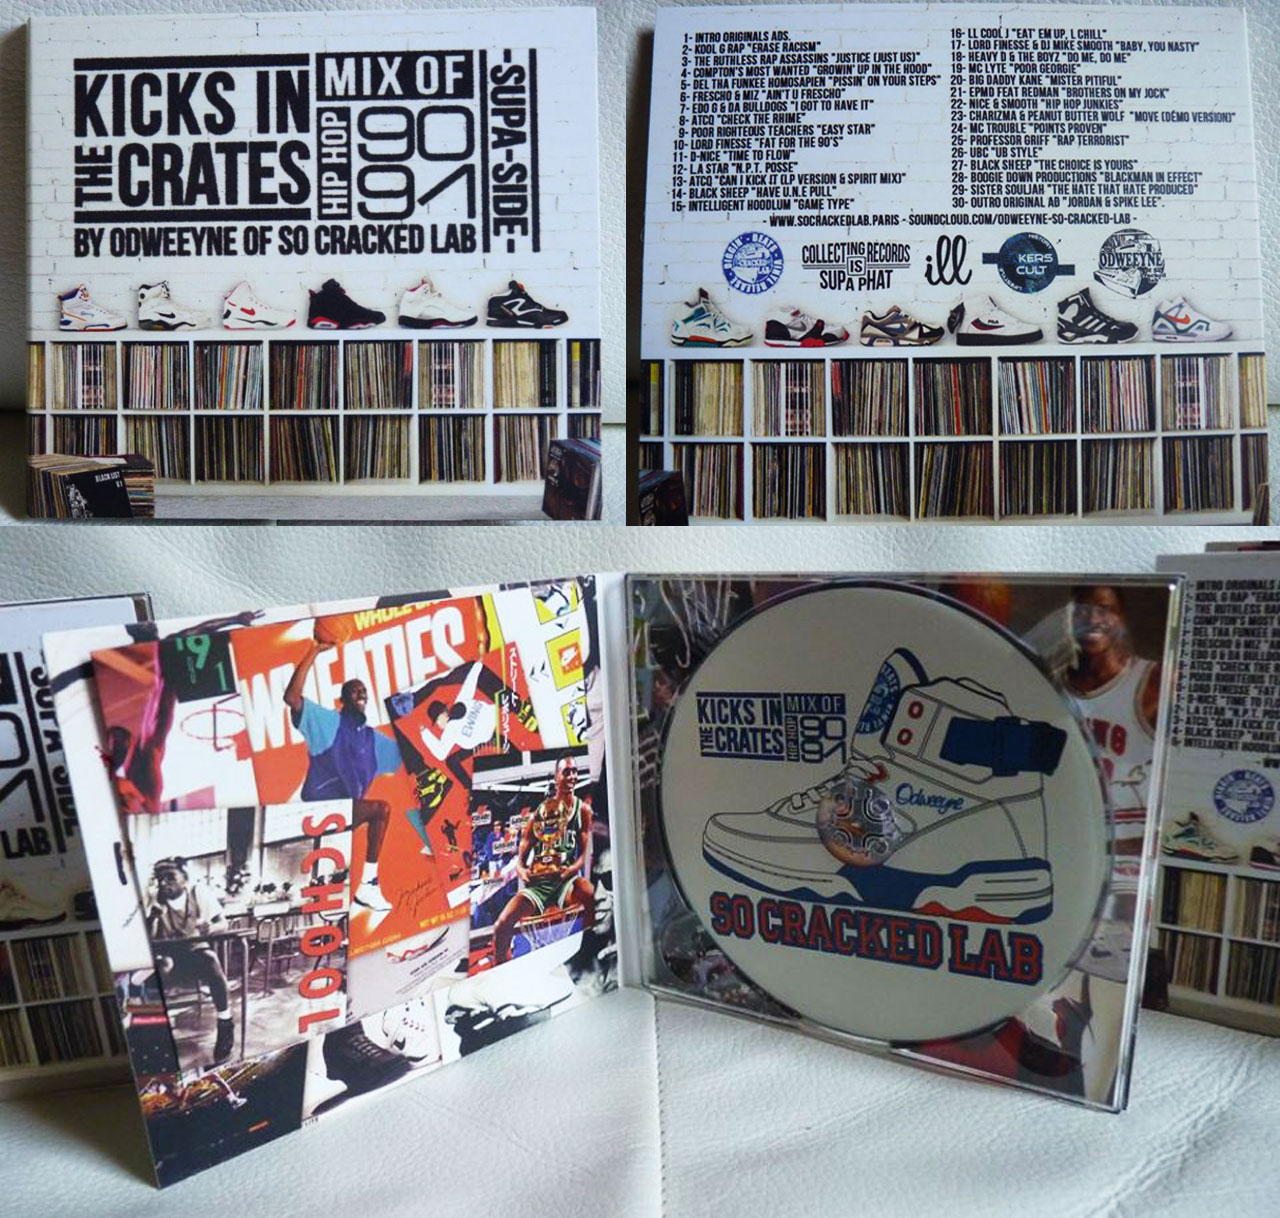 ODWEEYNE OF SO CRACKED LAB - KICKS IN THE CRATES VOL 1 & 2 - une réalisation ILL COMMUNICATIONS